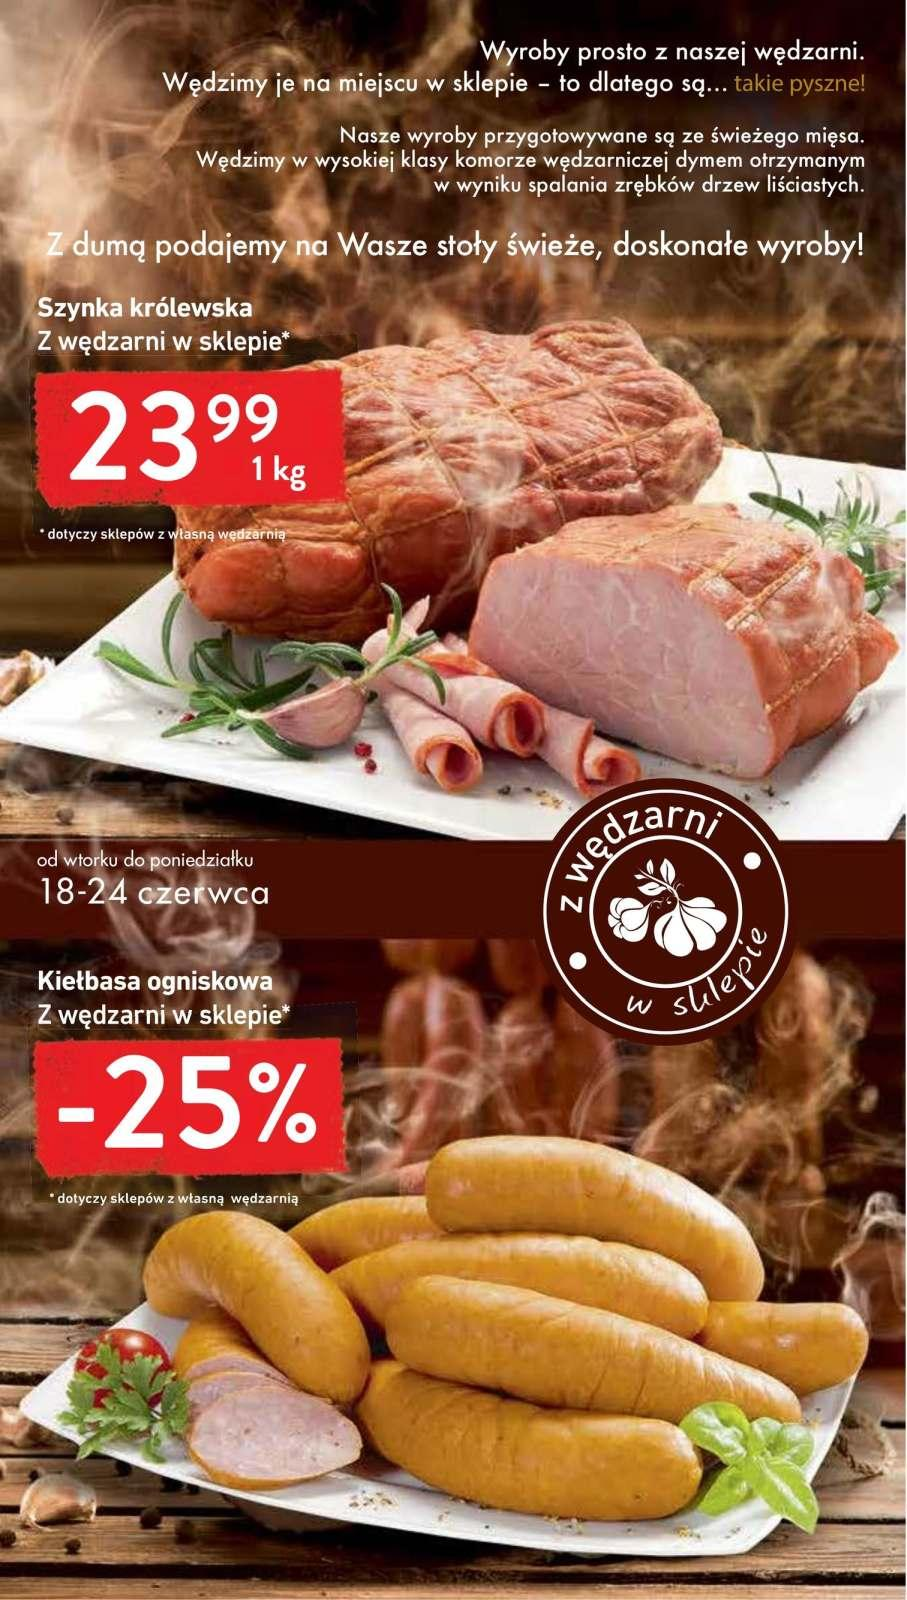 Gazetka promocyjna Intermarche do 24/06/2019 str.11